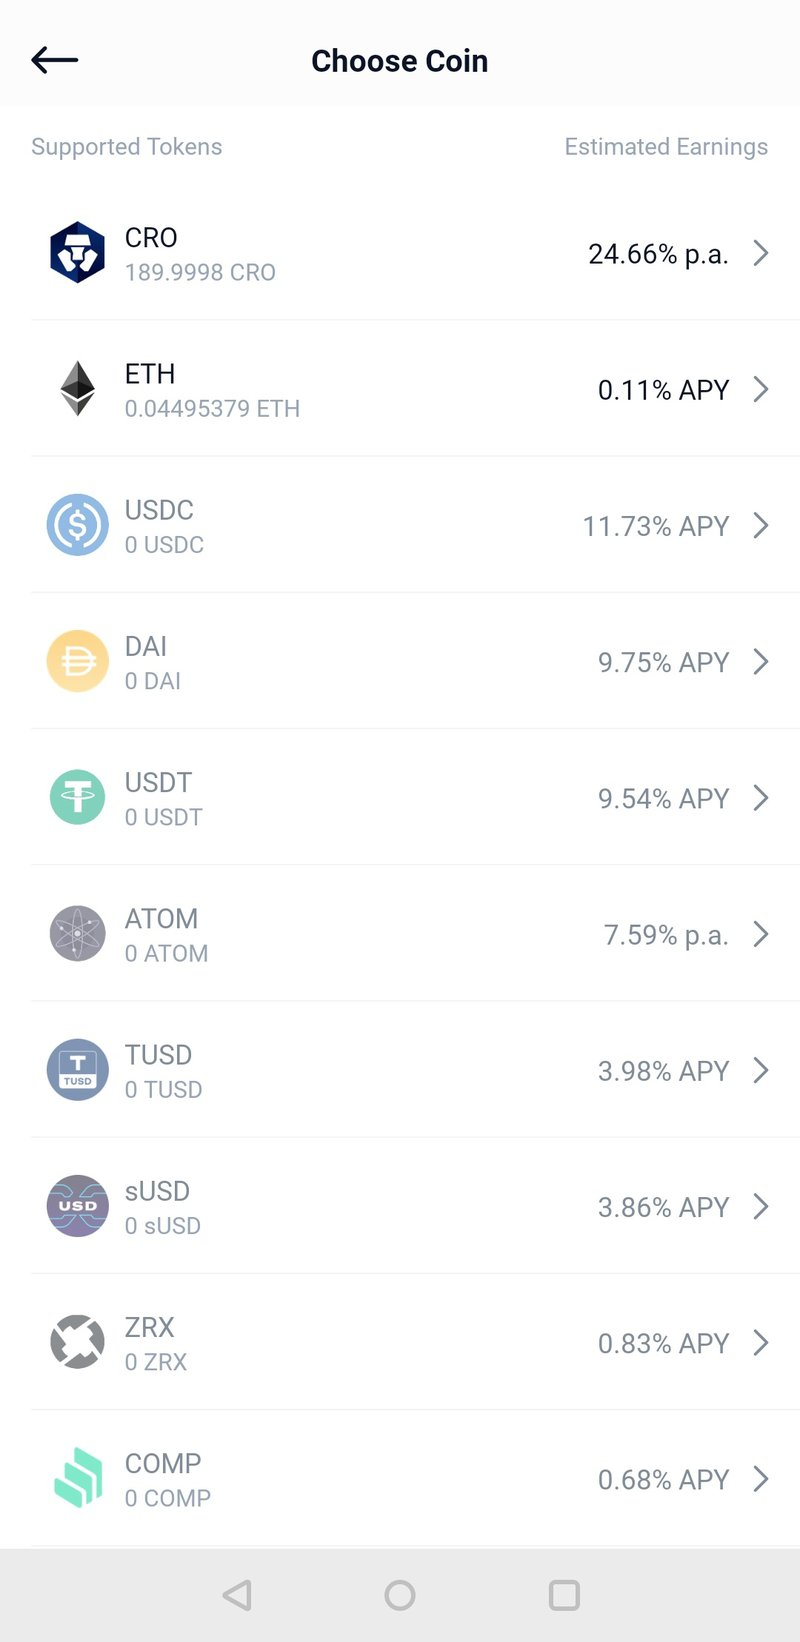 Staking in the mobile defi wallet